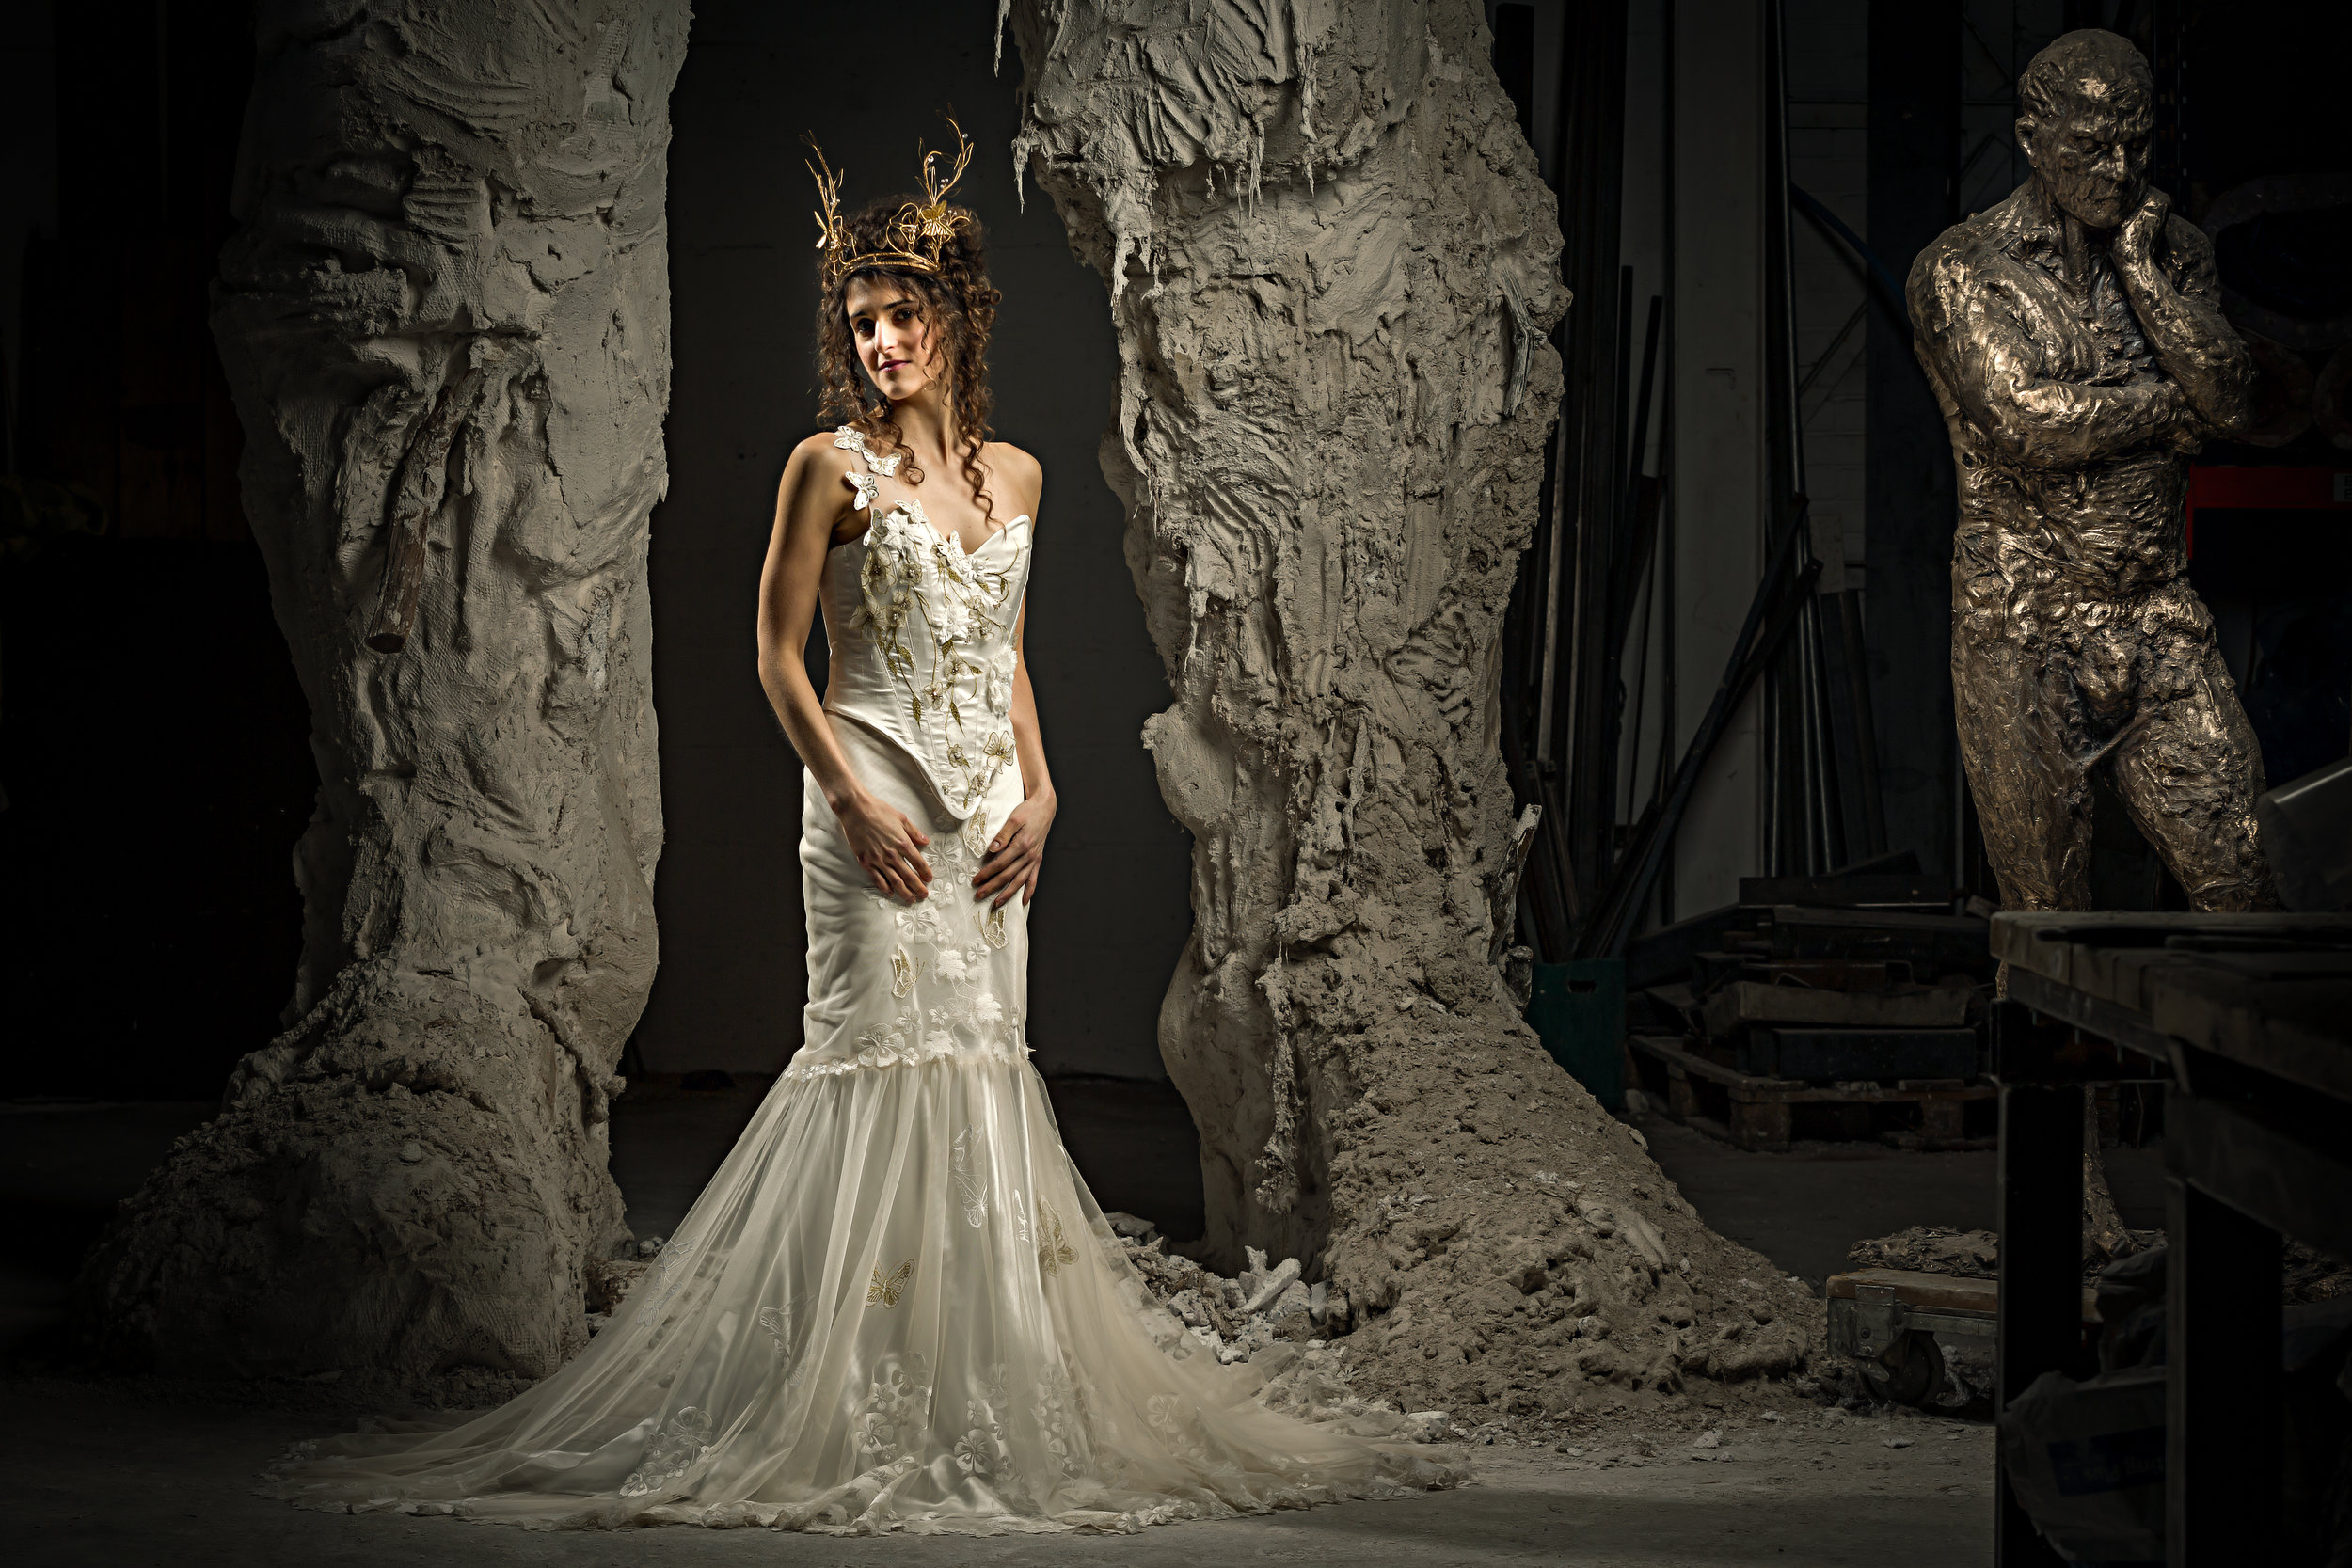 Martin Dobson Couture - 0136 - April 15, 2018 - copyright Foyers Photography-Edit.JPG